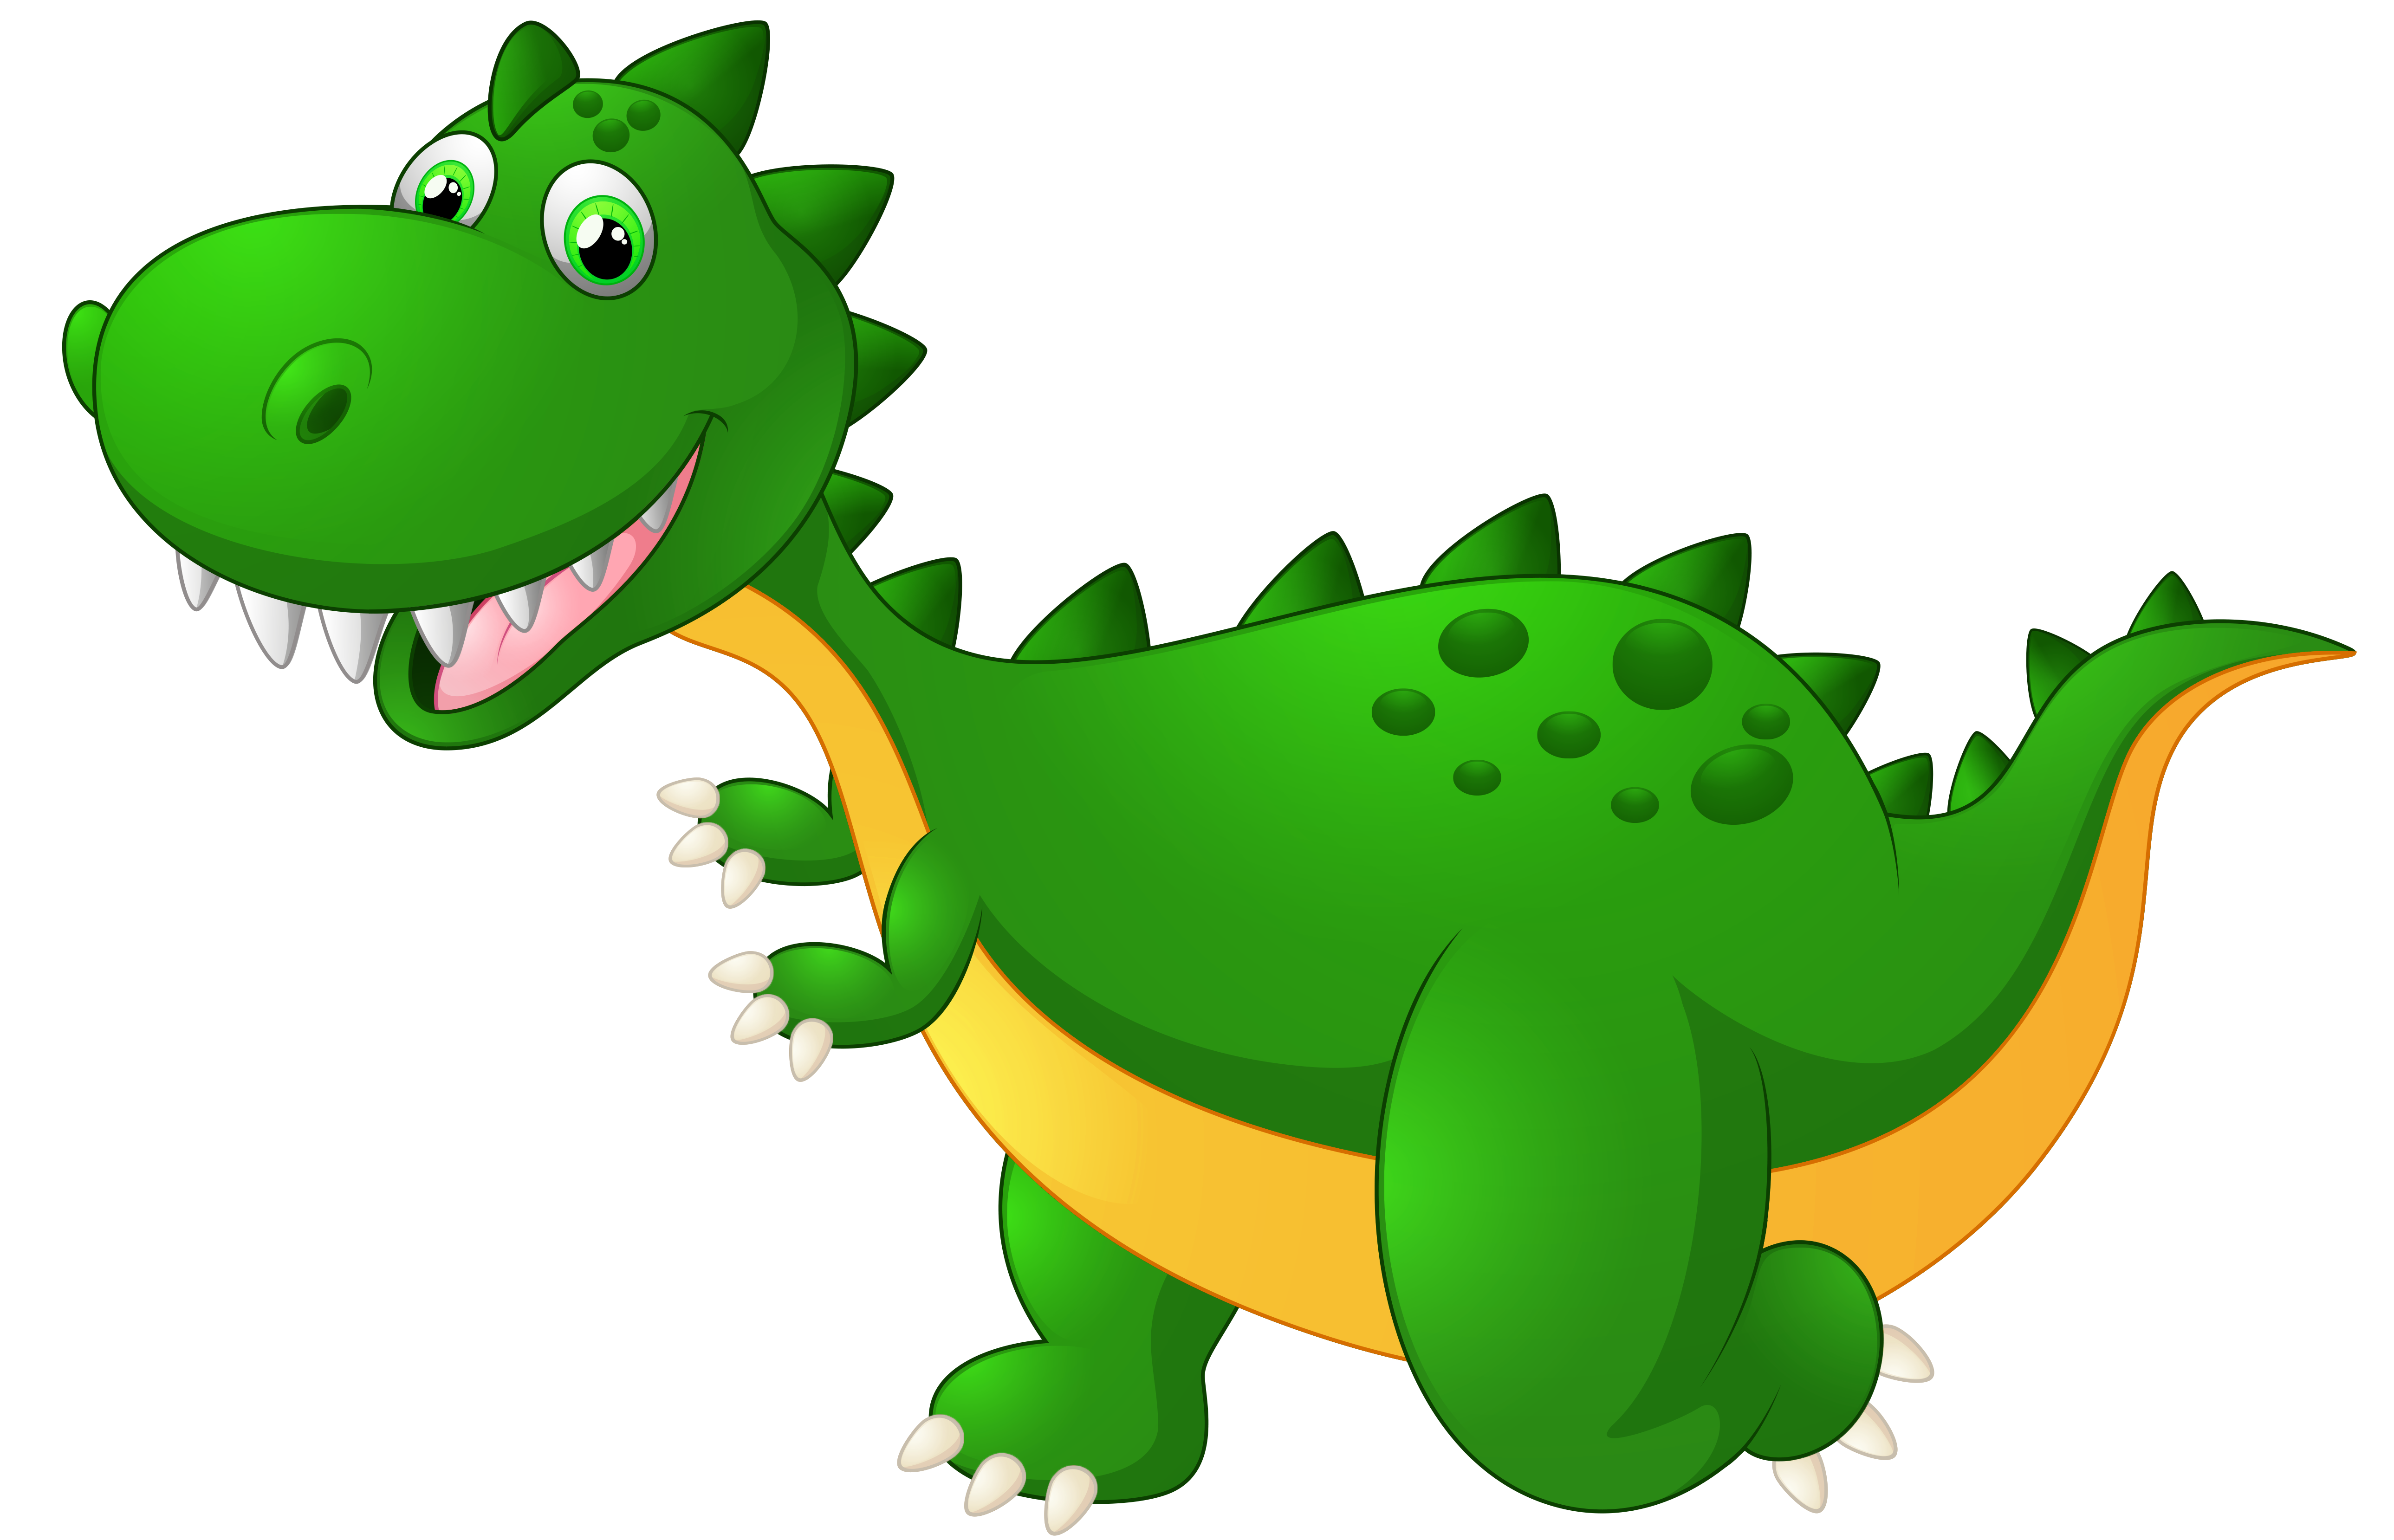 png royalty free Cute dragon cartoon png. Crocodile clipart transparent background